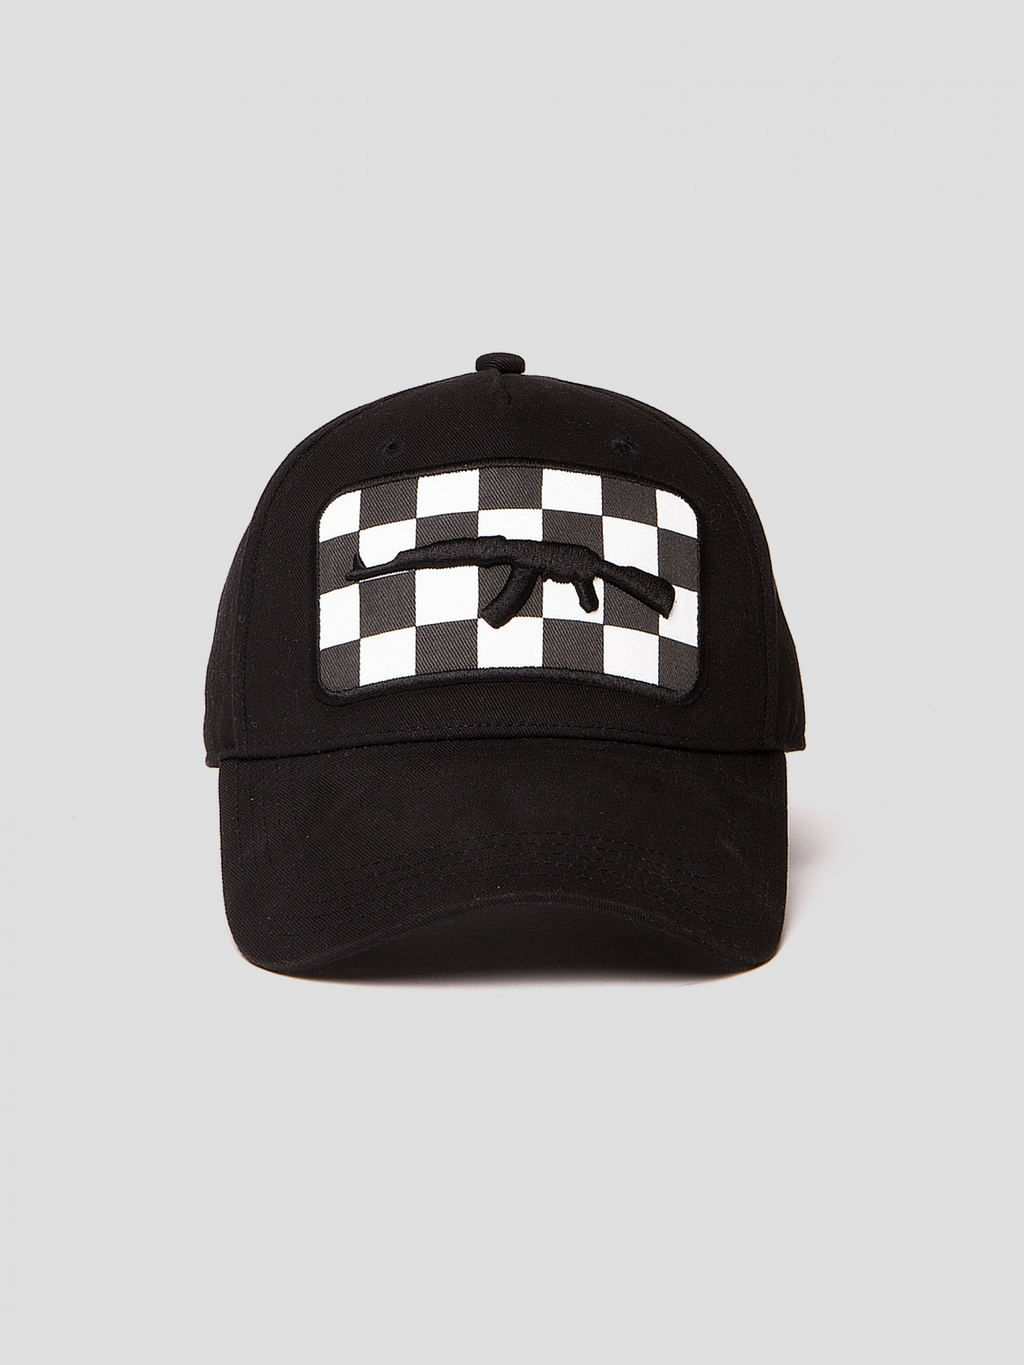 Defend Paris Damier Cap - This Is For Him